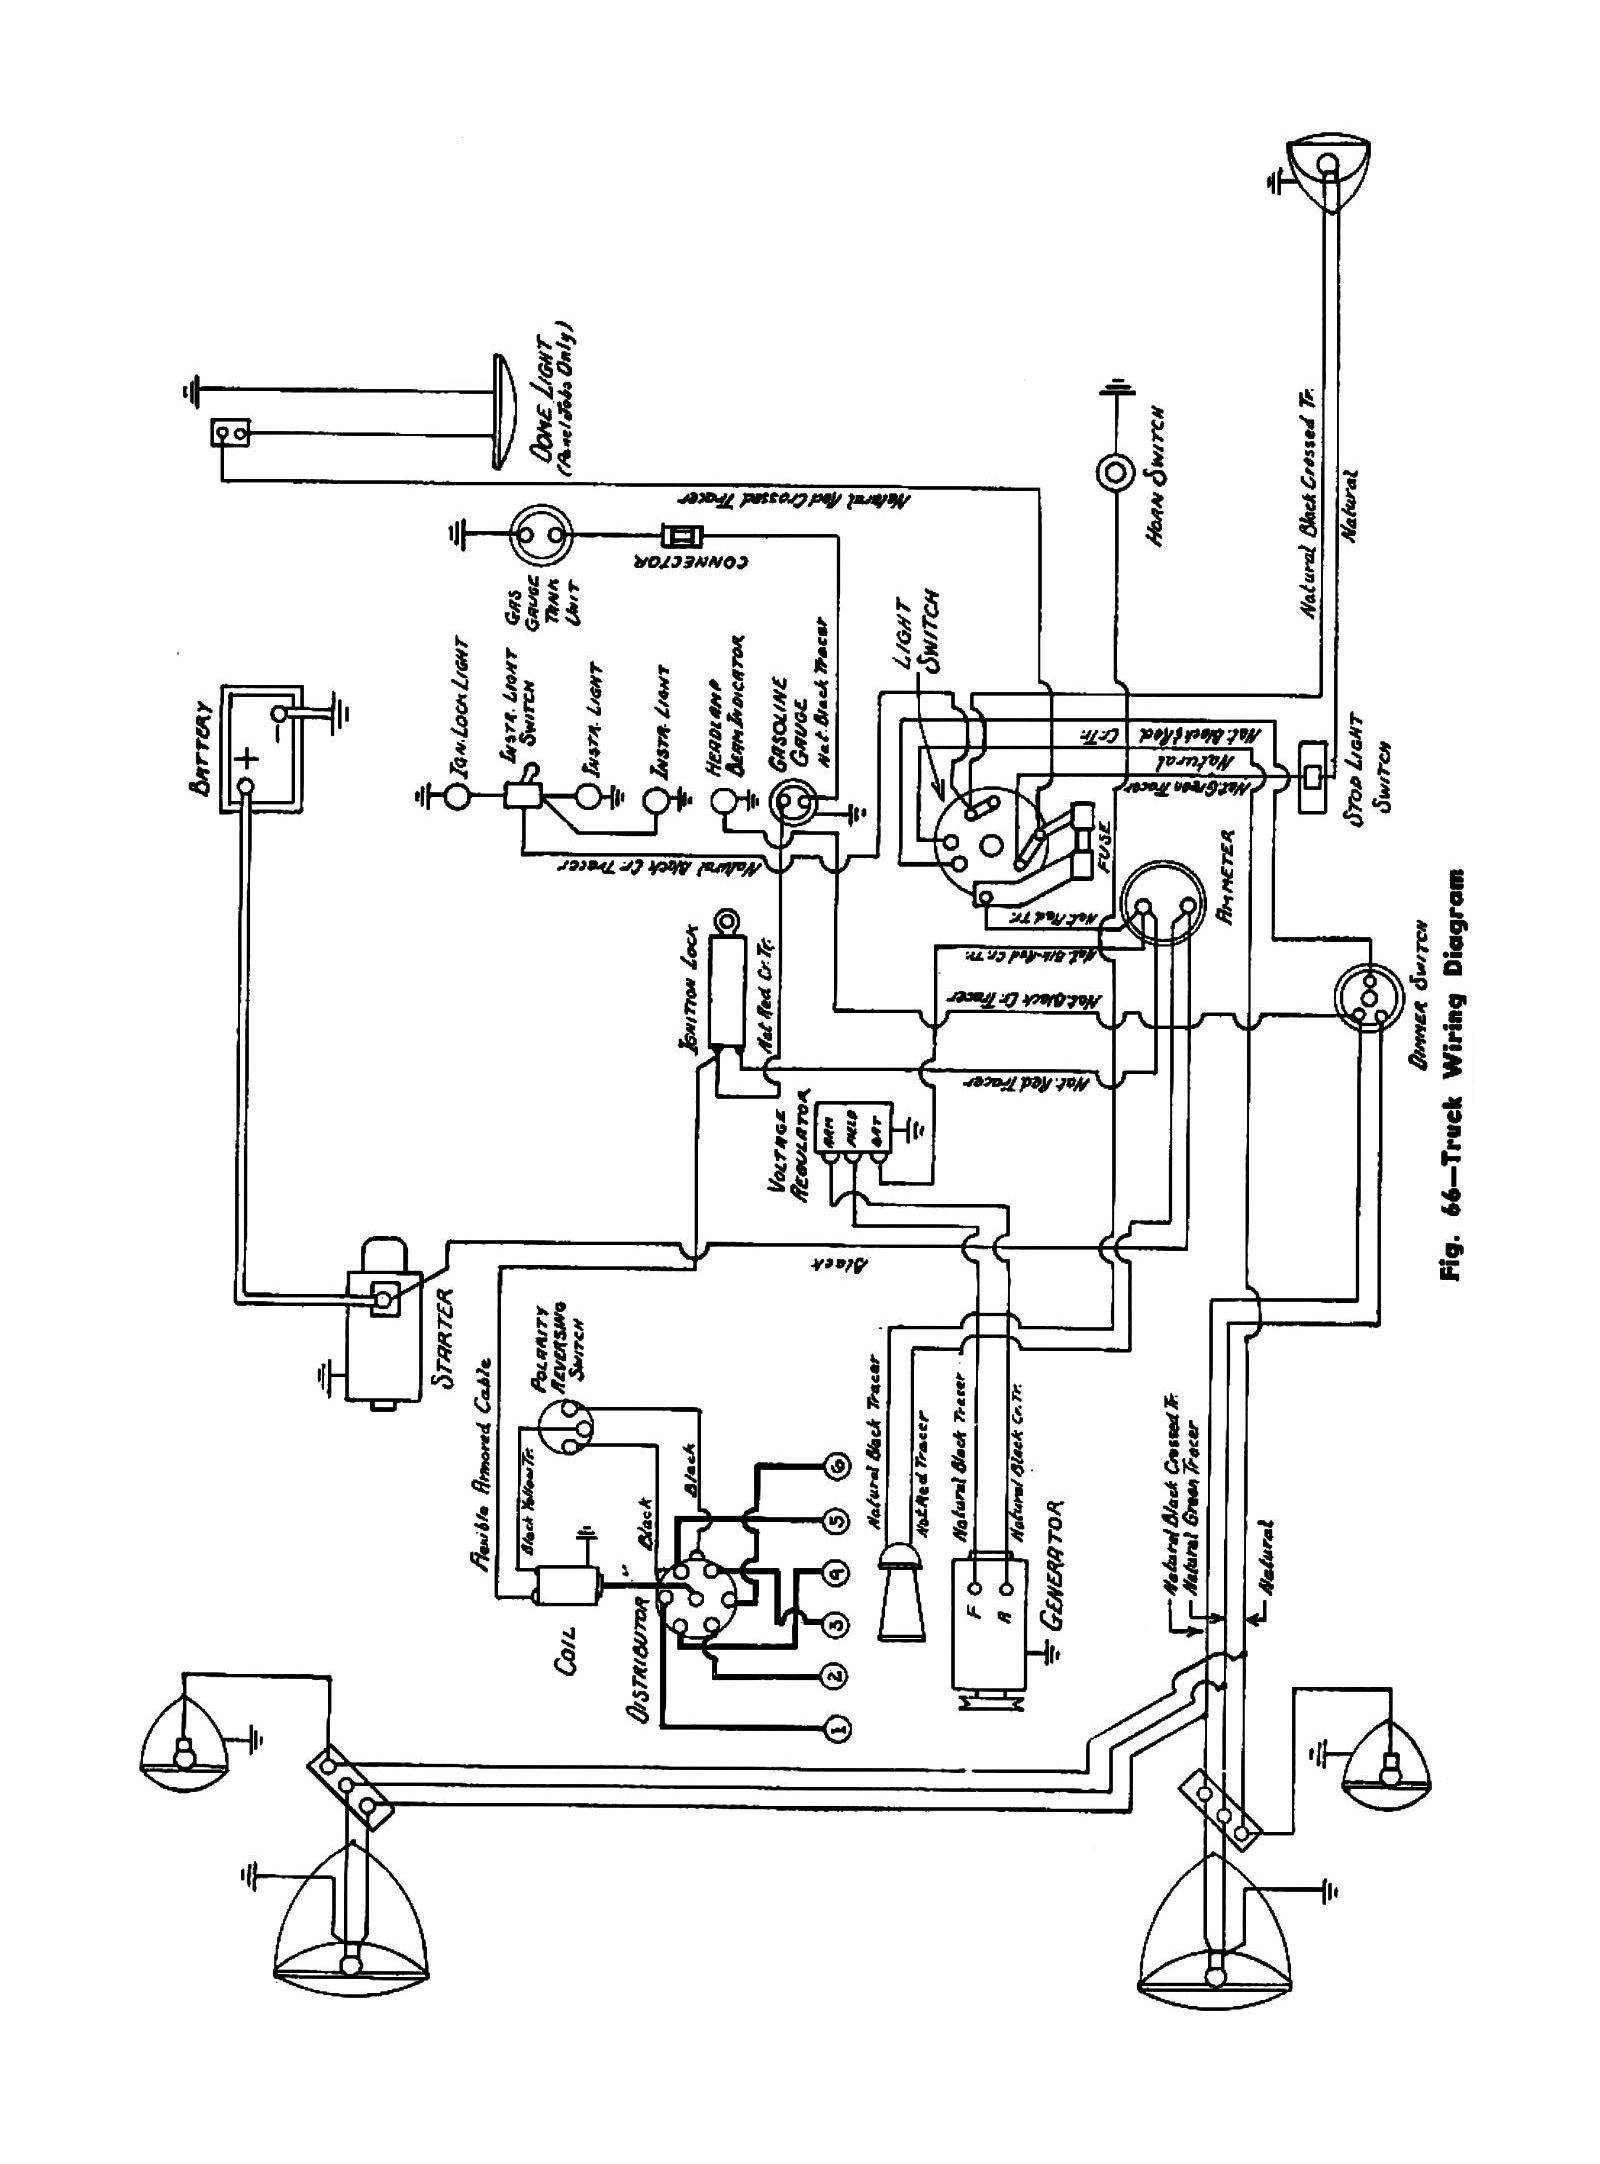 45truck ihc truck wiring diagrams mazda truck wiring diagrams \u2022 free  at highcare.asia